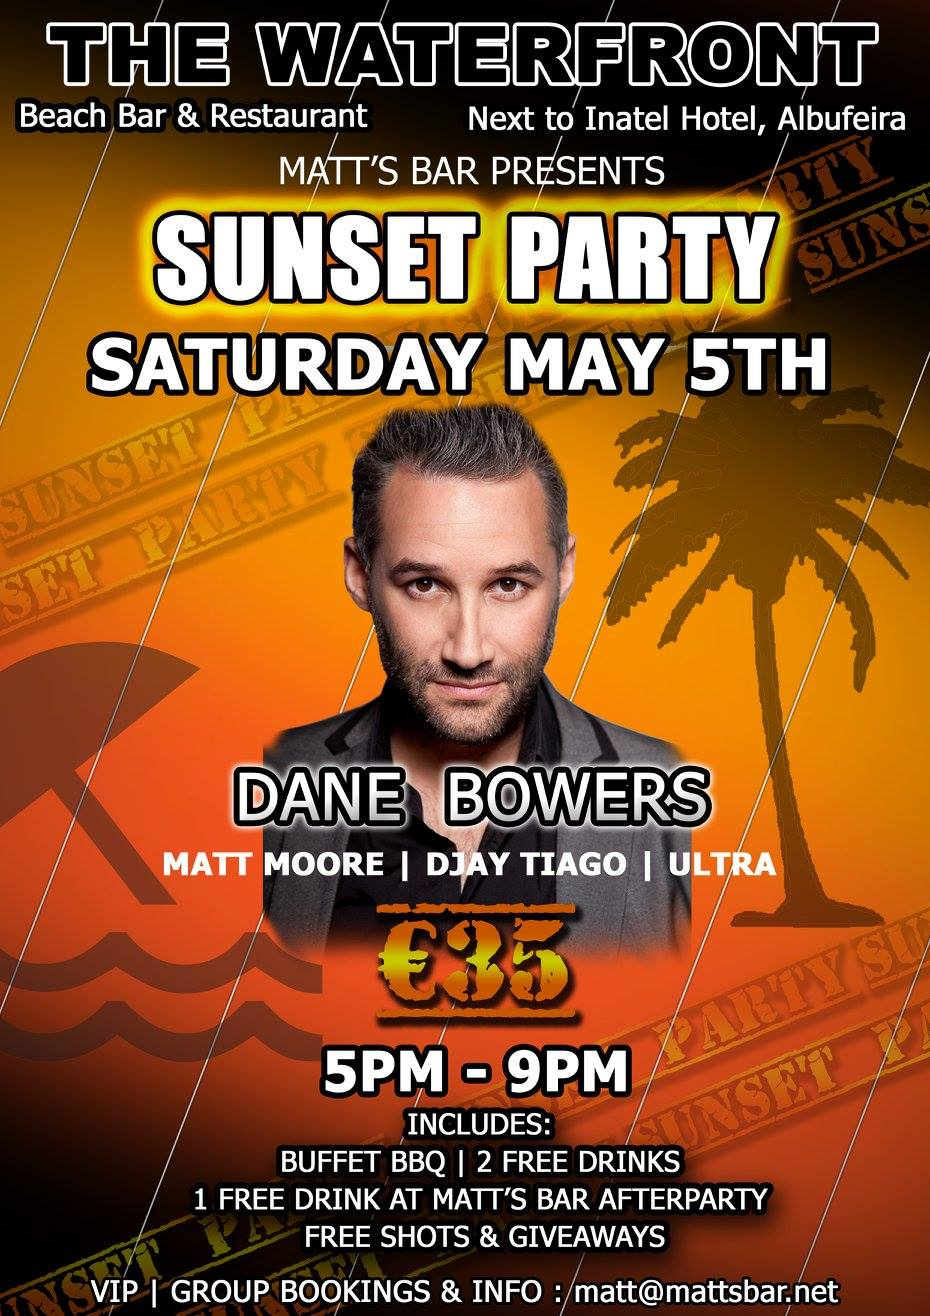 SUNSET PARTY – DANE BOWERS – THE WATERFRONT